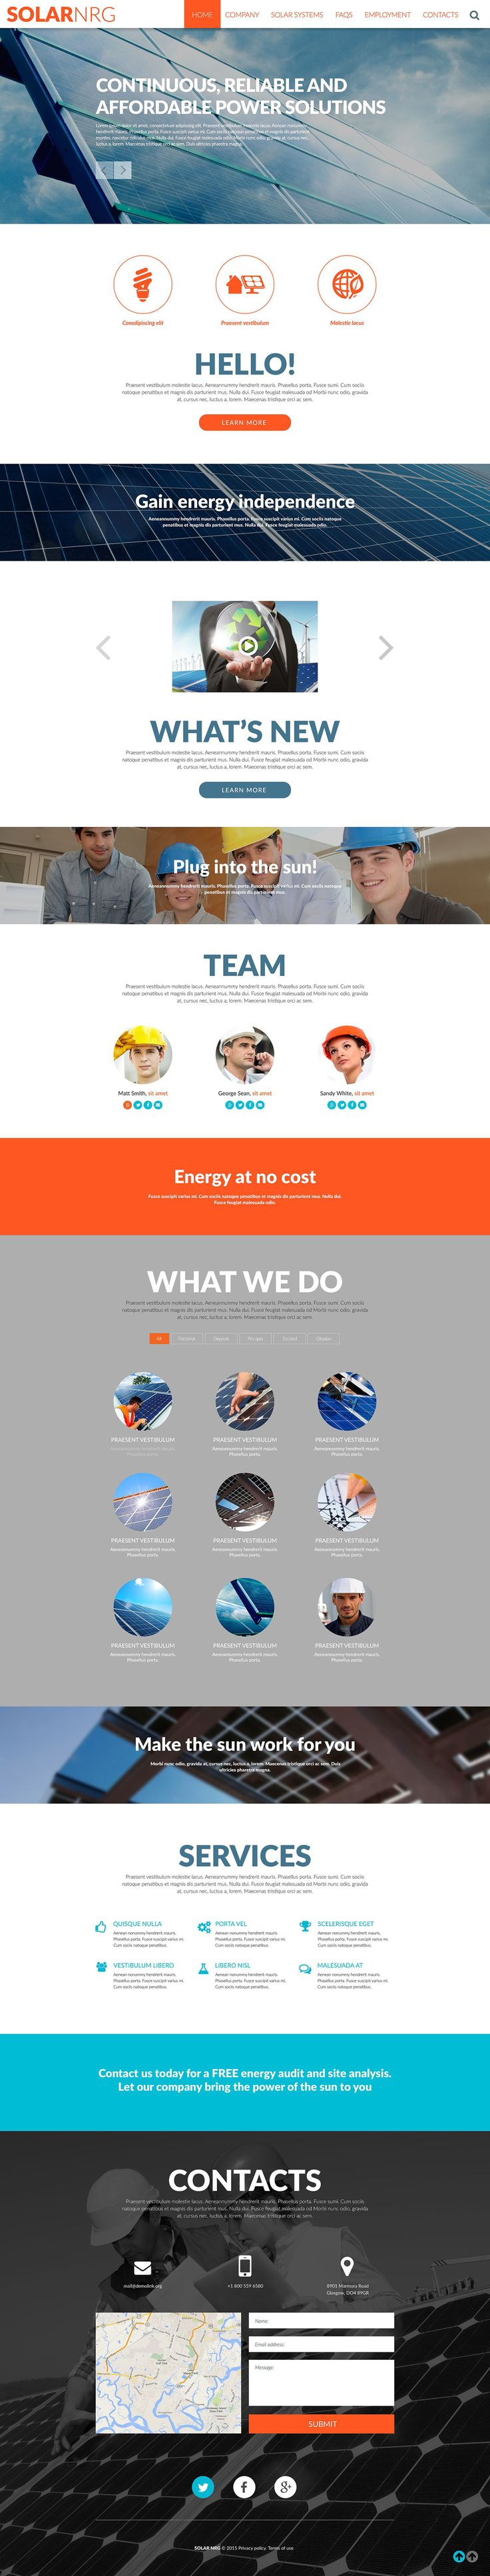 This Solar Energy Company Website Template boasts a user friendly design for environmental and industrial companies. This responsive theme is easy to navigate for users of both desktops and mobile ...